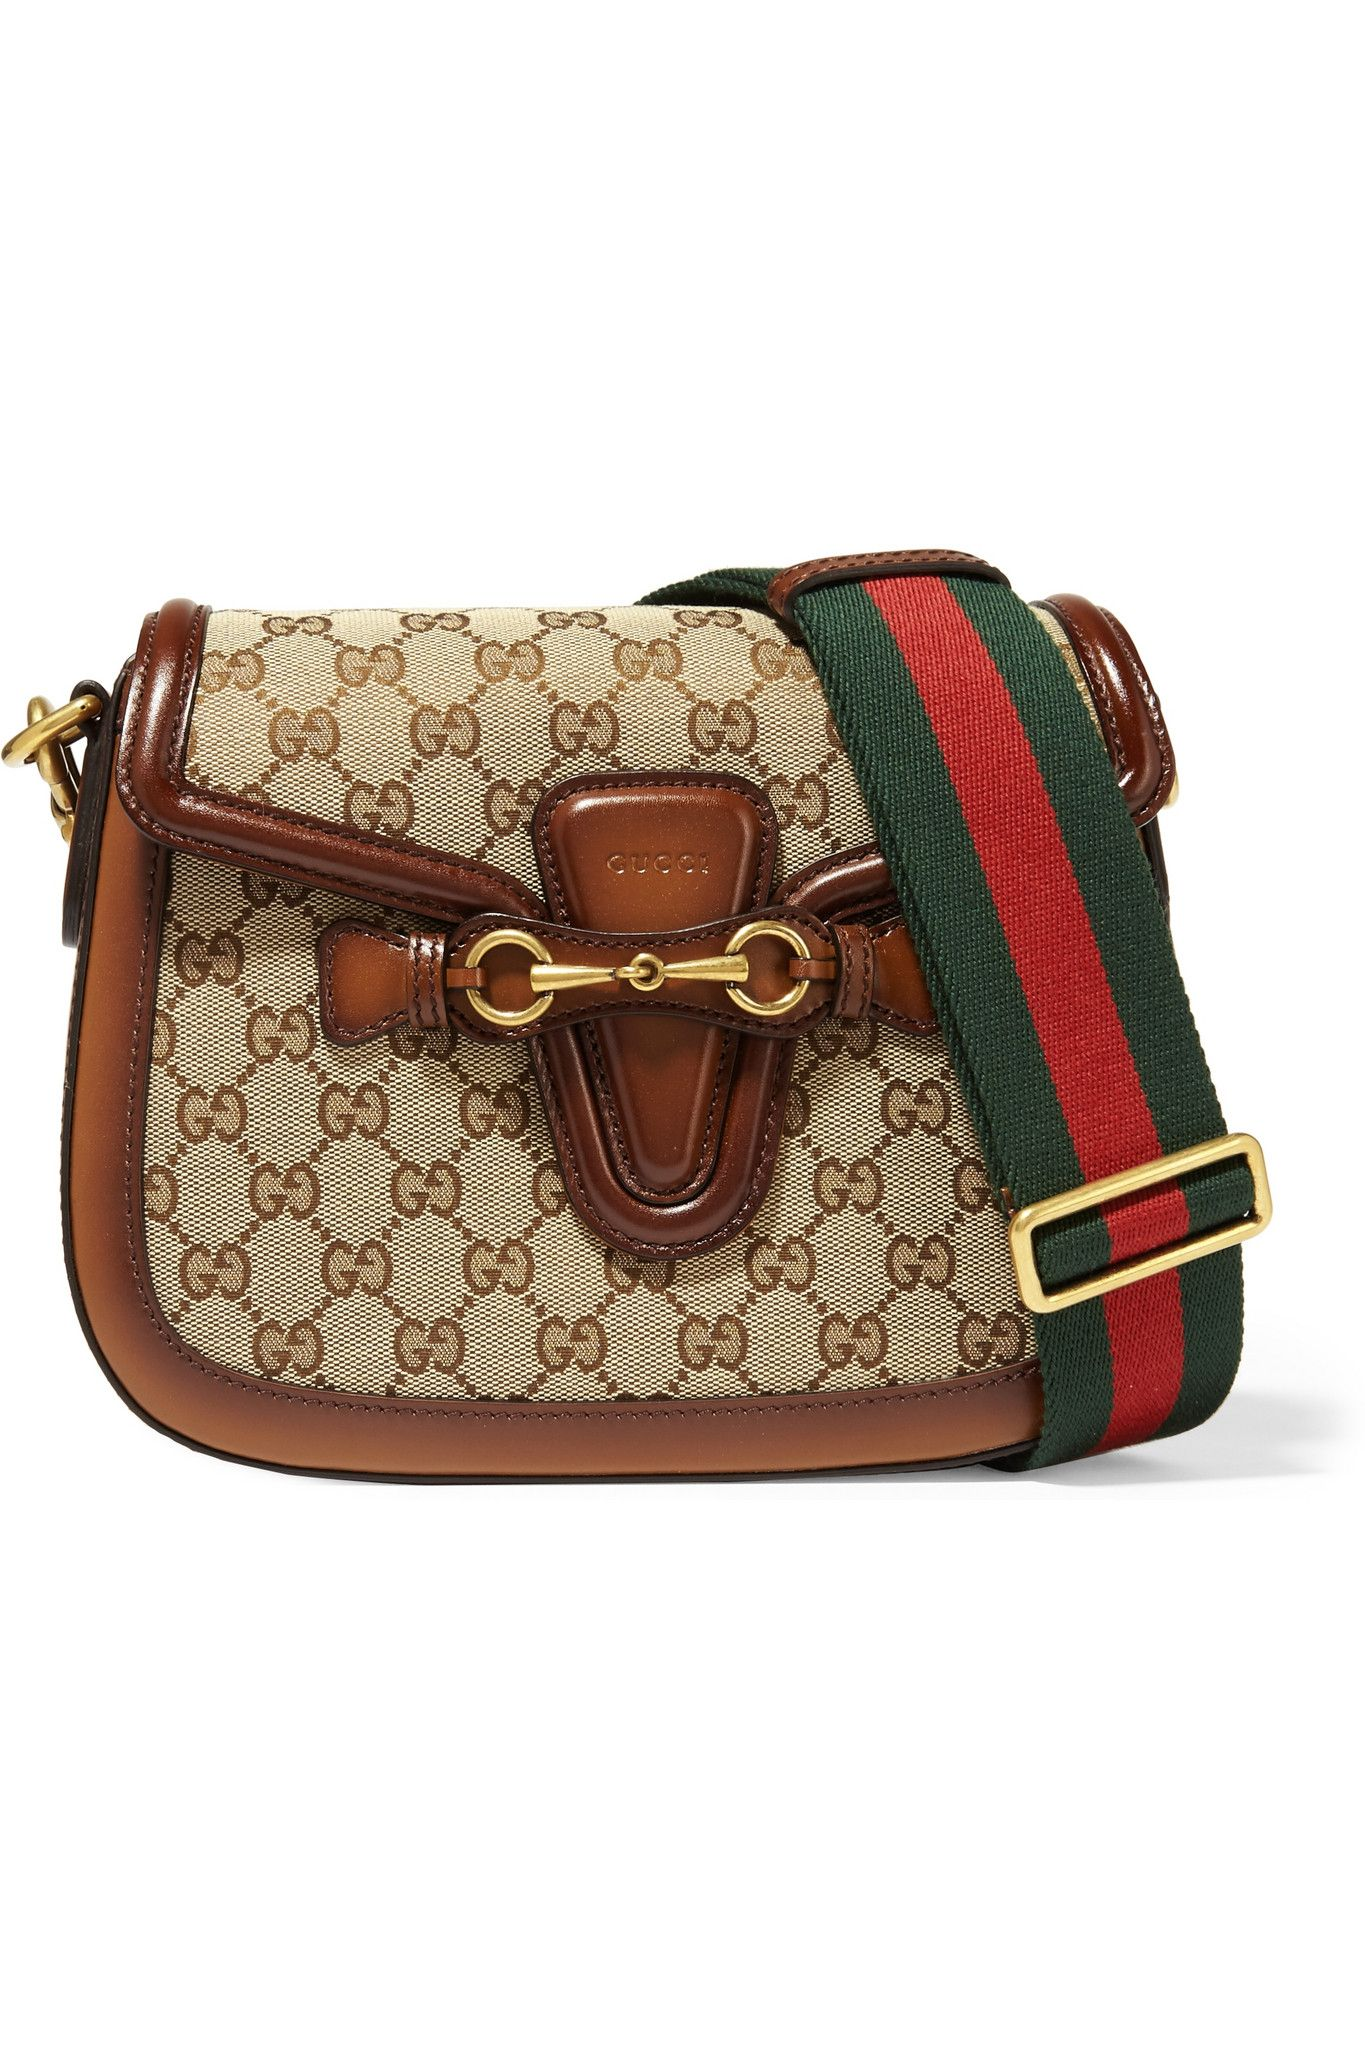 2b2aff68fca0 Go hands free this season and consider one of these crossbody bags. GUCCI Lady  Web medium leather-trimmed ...